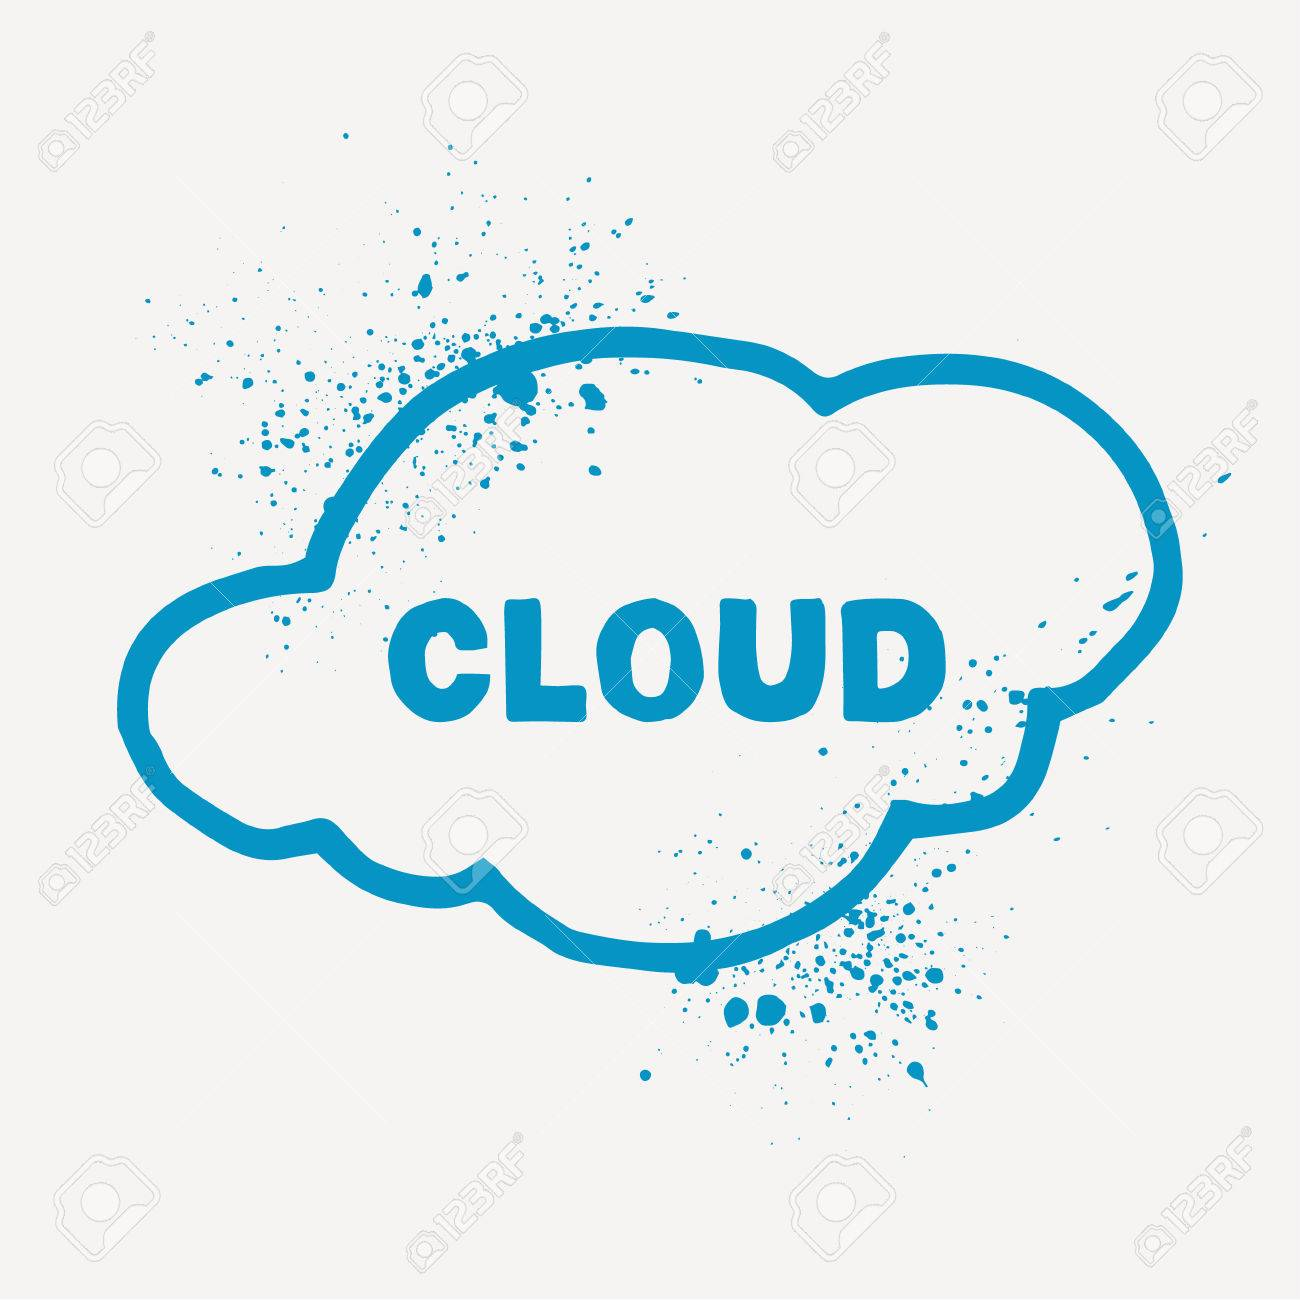 Outline aquarelle cloud symbol with splashes perfect as cloud outline aquarelle cloud symbol with splashes perfect as cloud storage or weather forecast symbol biocorpaavc Gallery